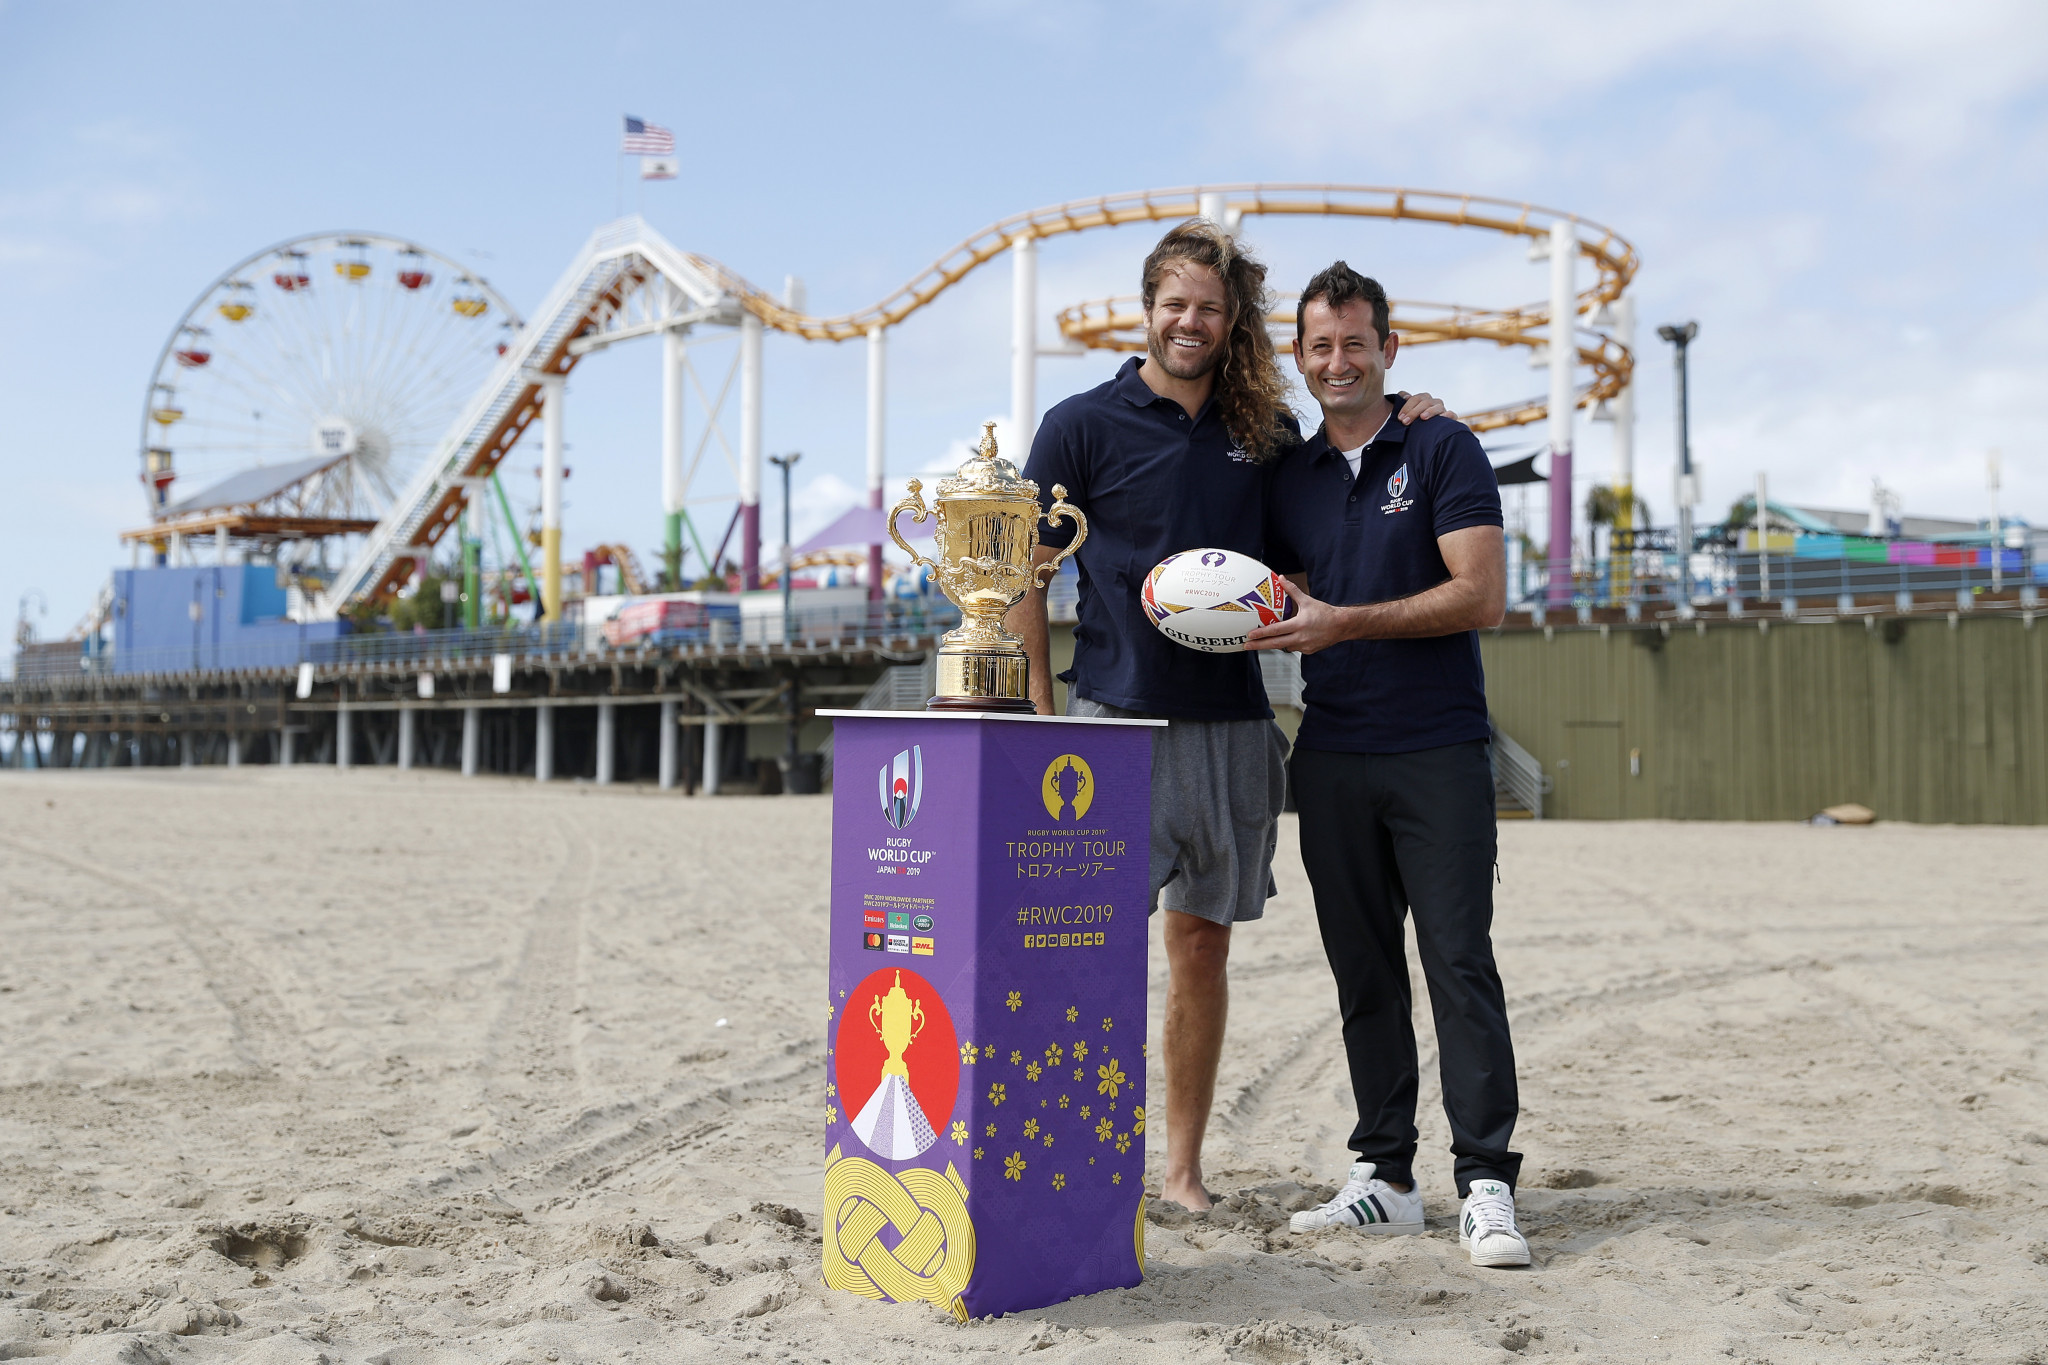 Former United States rugby captain Todd Clever, left, and ex-player Dallen Stanford, right, both joined the trophy on its tour around Los Angeles ©Rugby World Cup